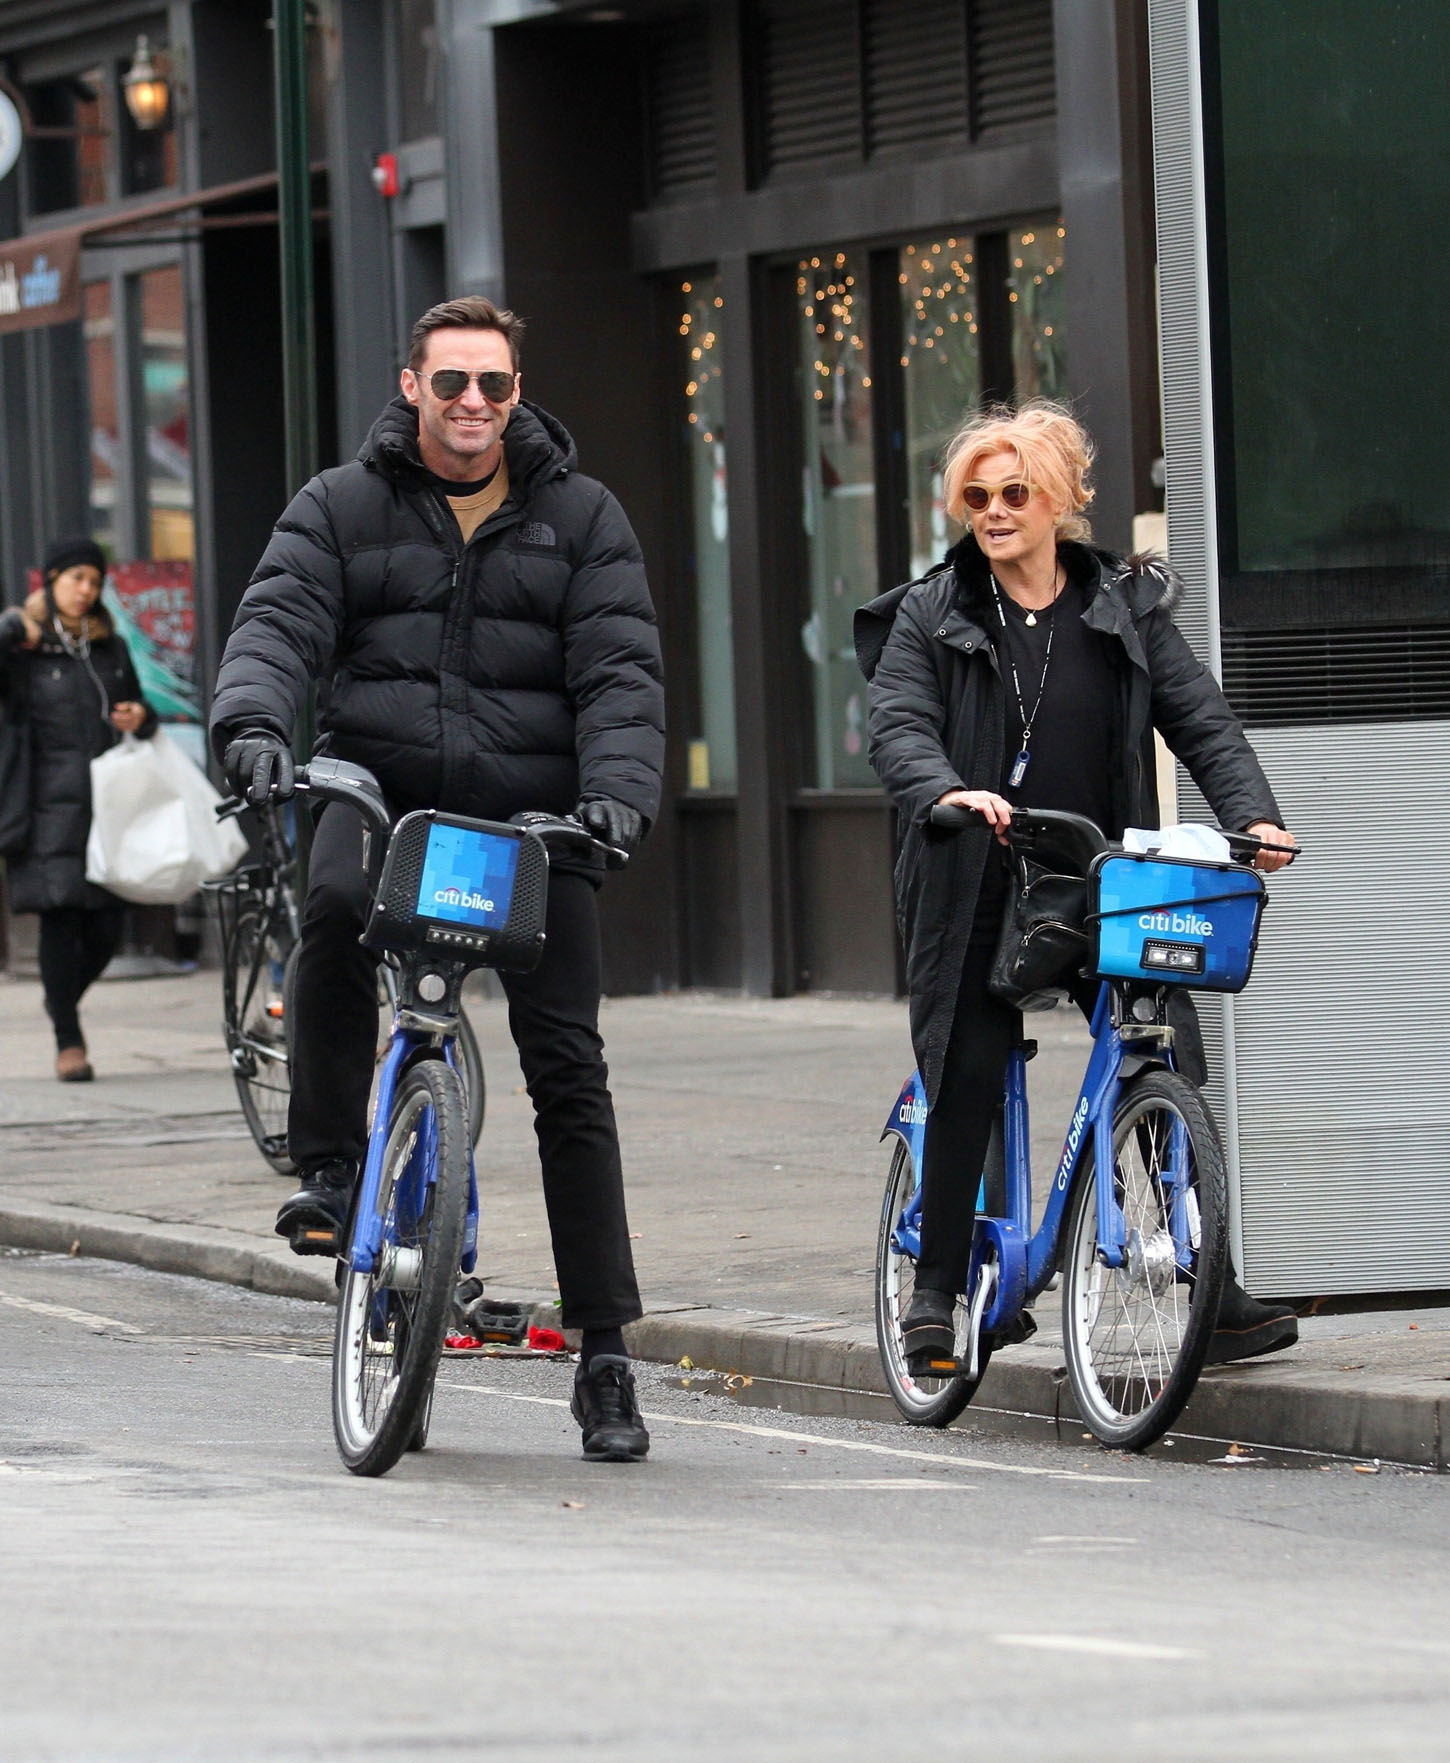 New York, NY  - Golden Globe Nominee Hugh Jackman is all smiles while riding Citibikes with Wife Deborra-Lee Furness in Manhattan's West Village neighborhood. Hugh was recently nominated as